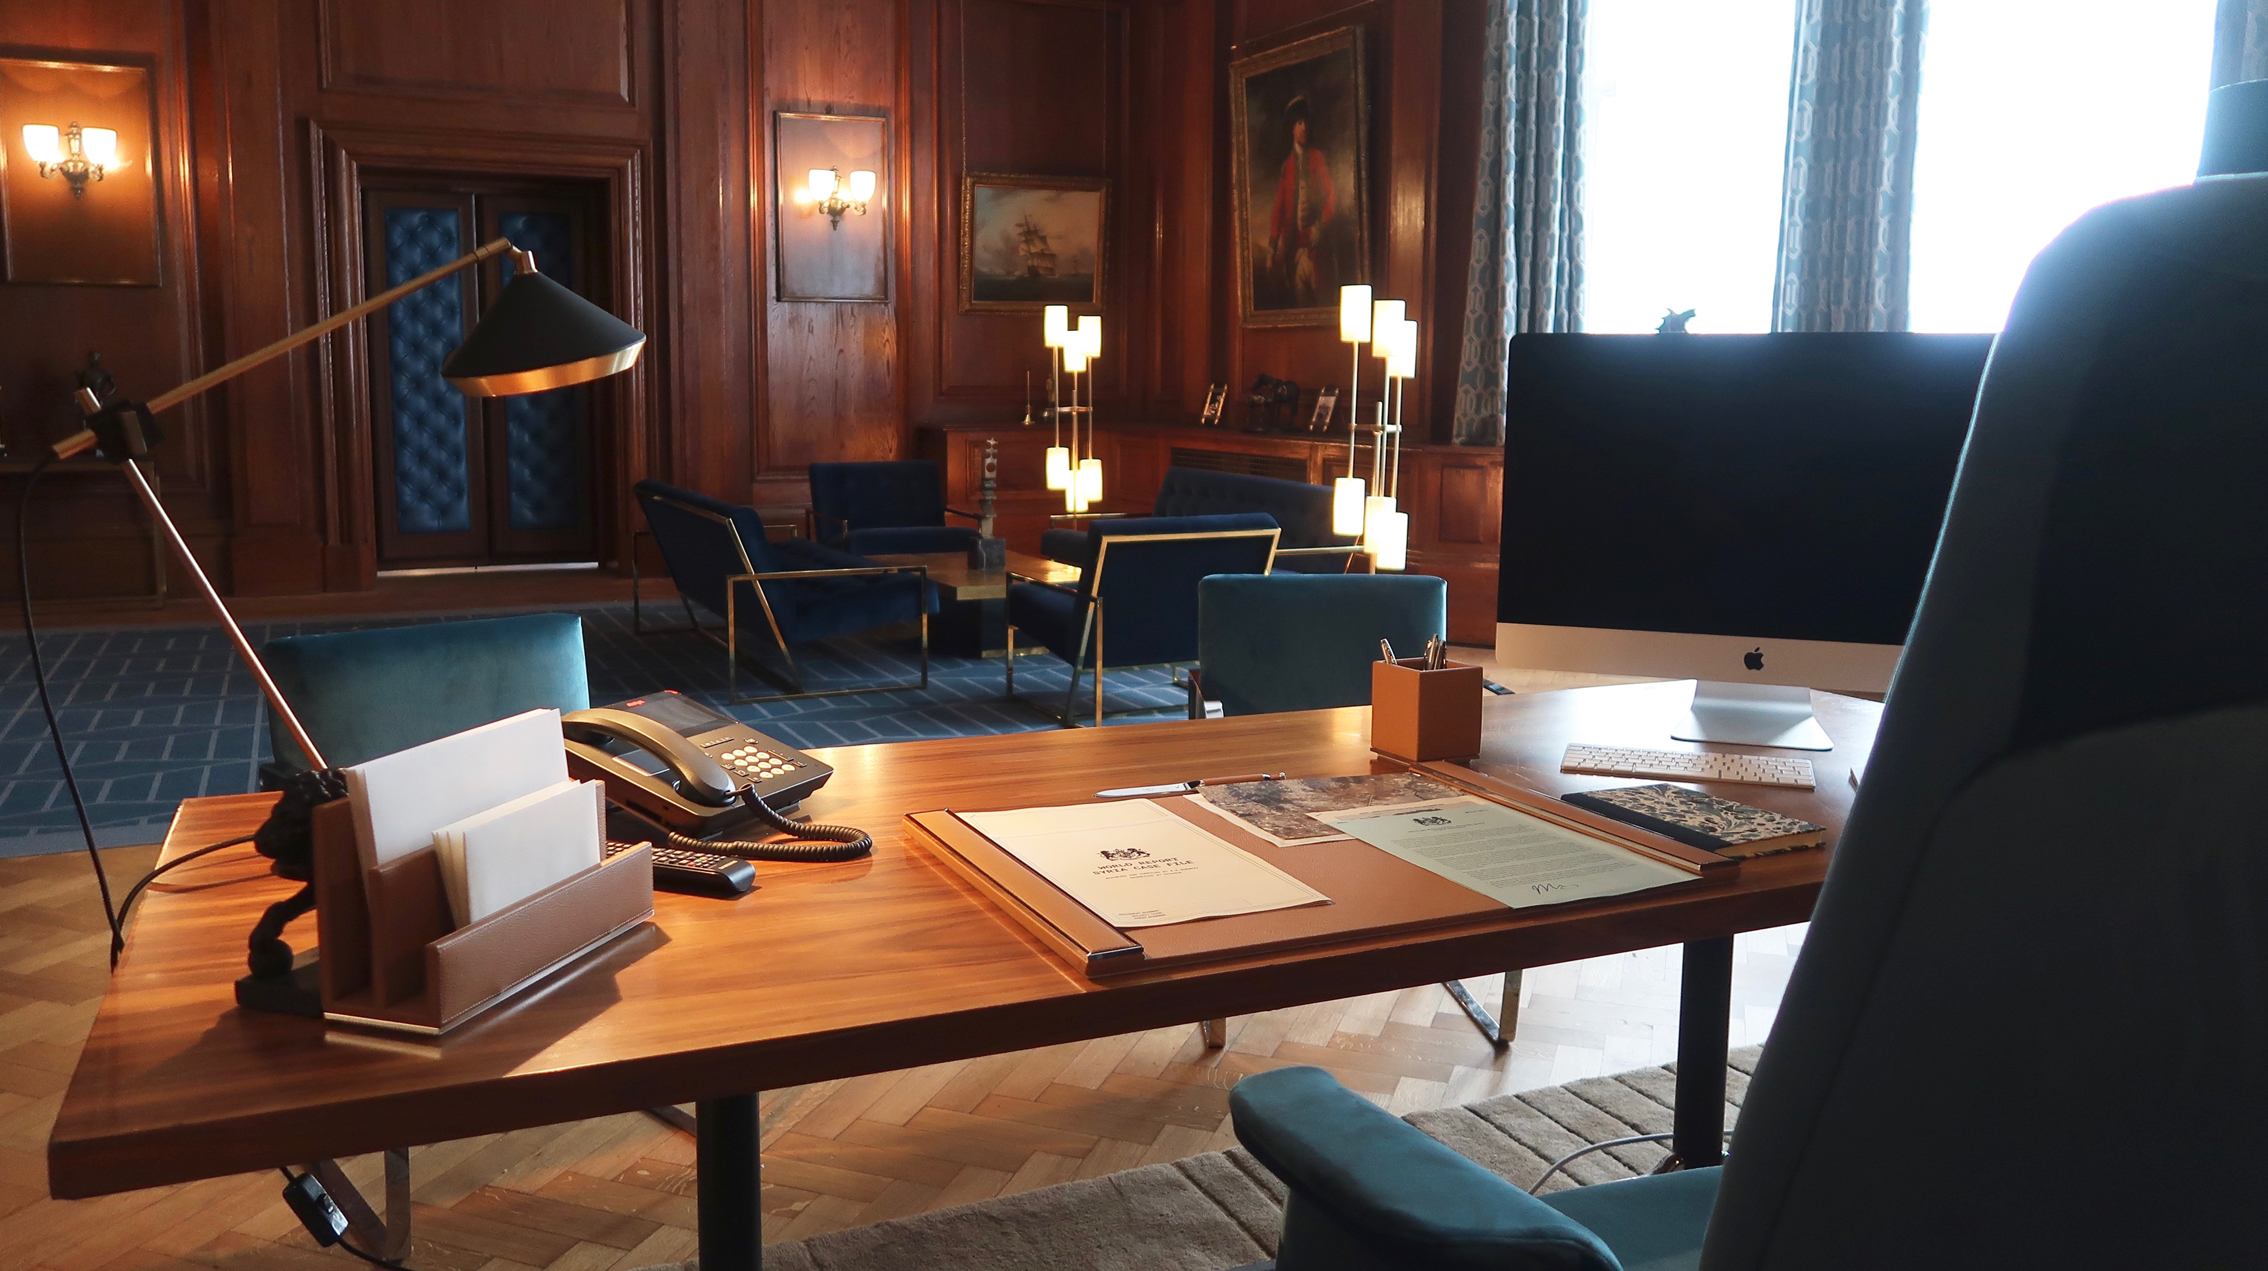 Pegasus' Mi7 office in Johnny English Strikes Again. Production Design by Simon Bowles, Set Decoration by Liz Griffiths. Photo c/o Universal Pictures.